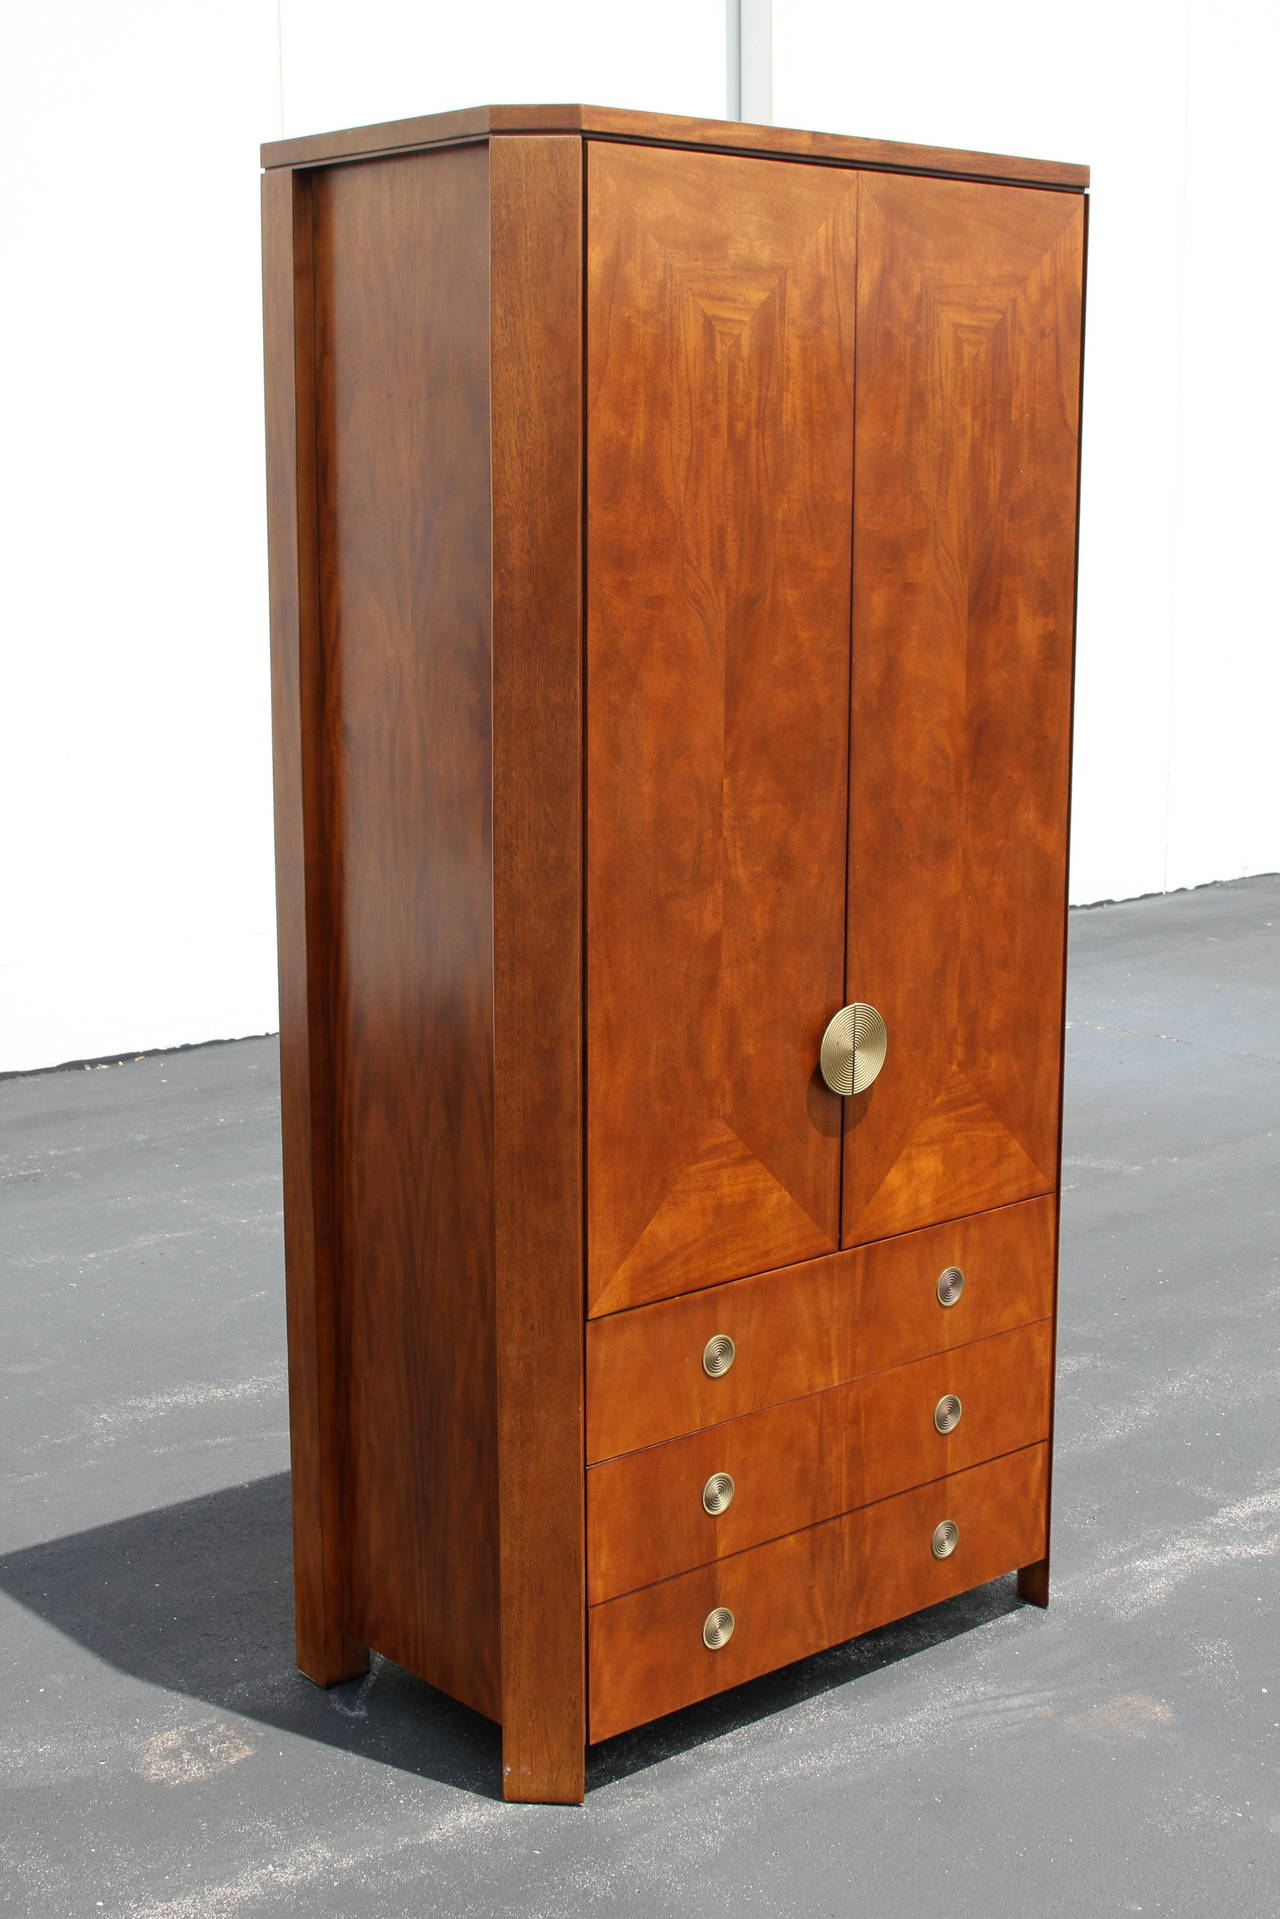 Delicieux Tall Skyscraper Form Armoire With Cabinet Doors Above Three Drawers, All  With Concentric Brass Circular. Modern Charles Pfister Armoire For Baker  Furniture ...